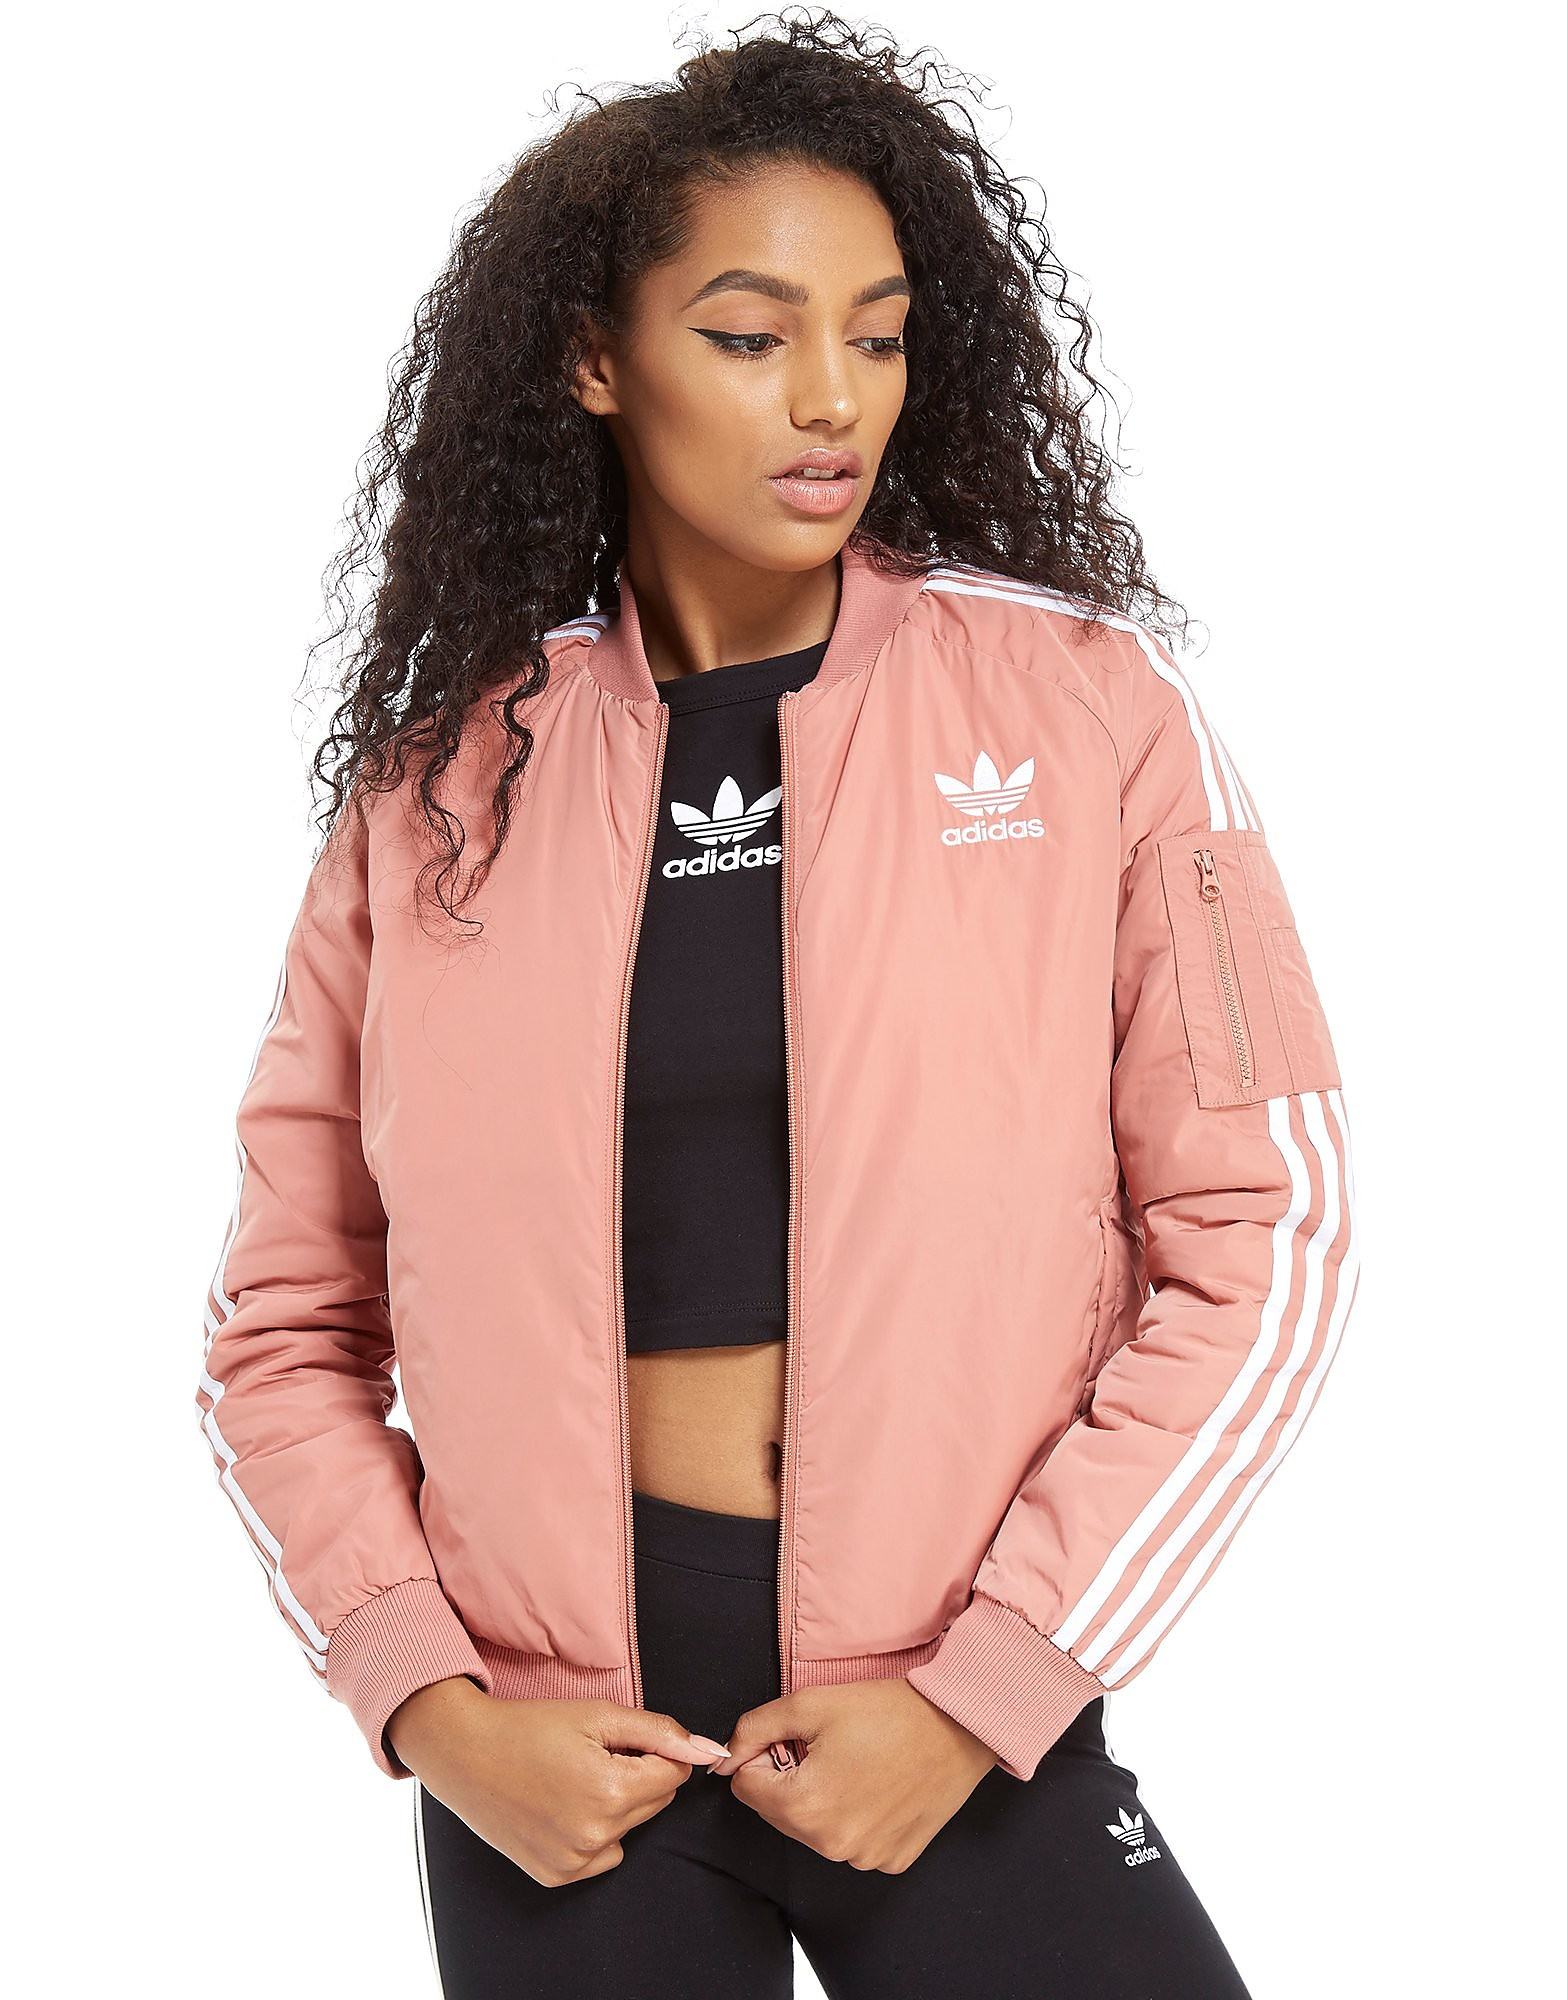 adidas Originals Originals Superstar Jacket